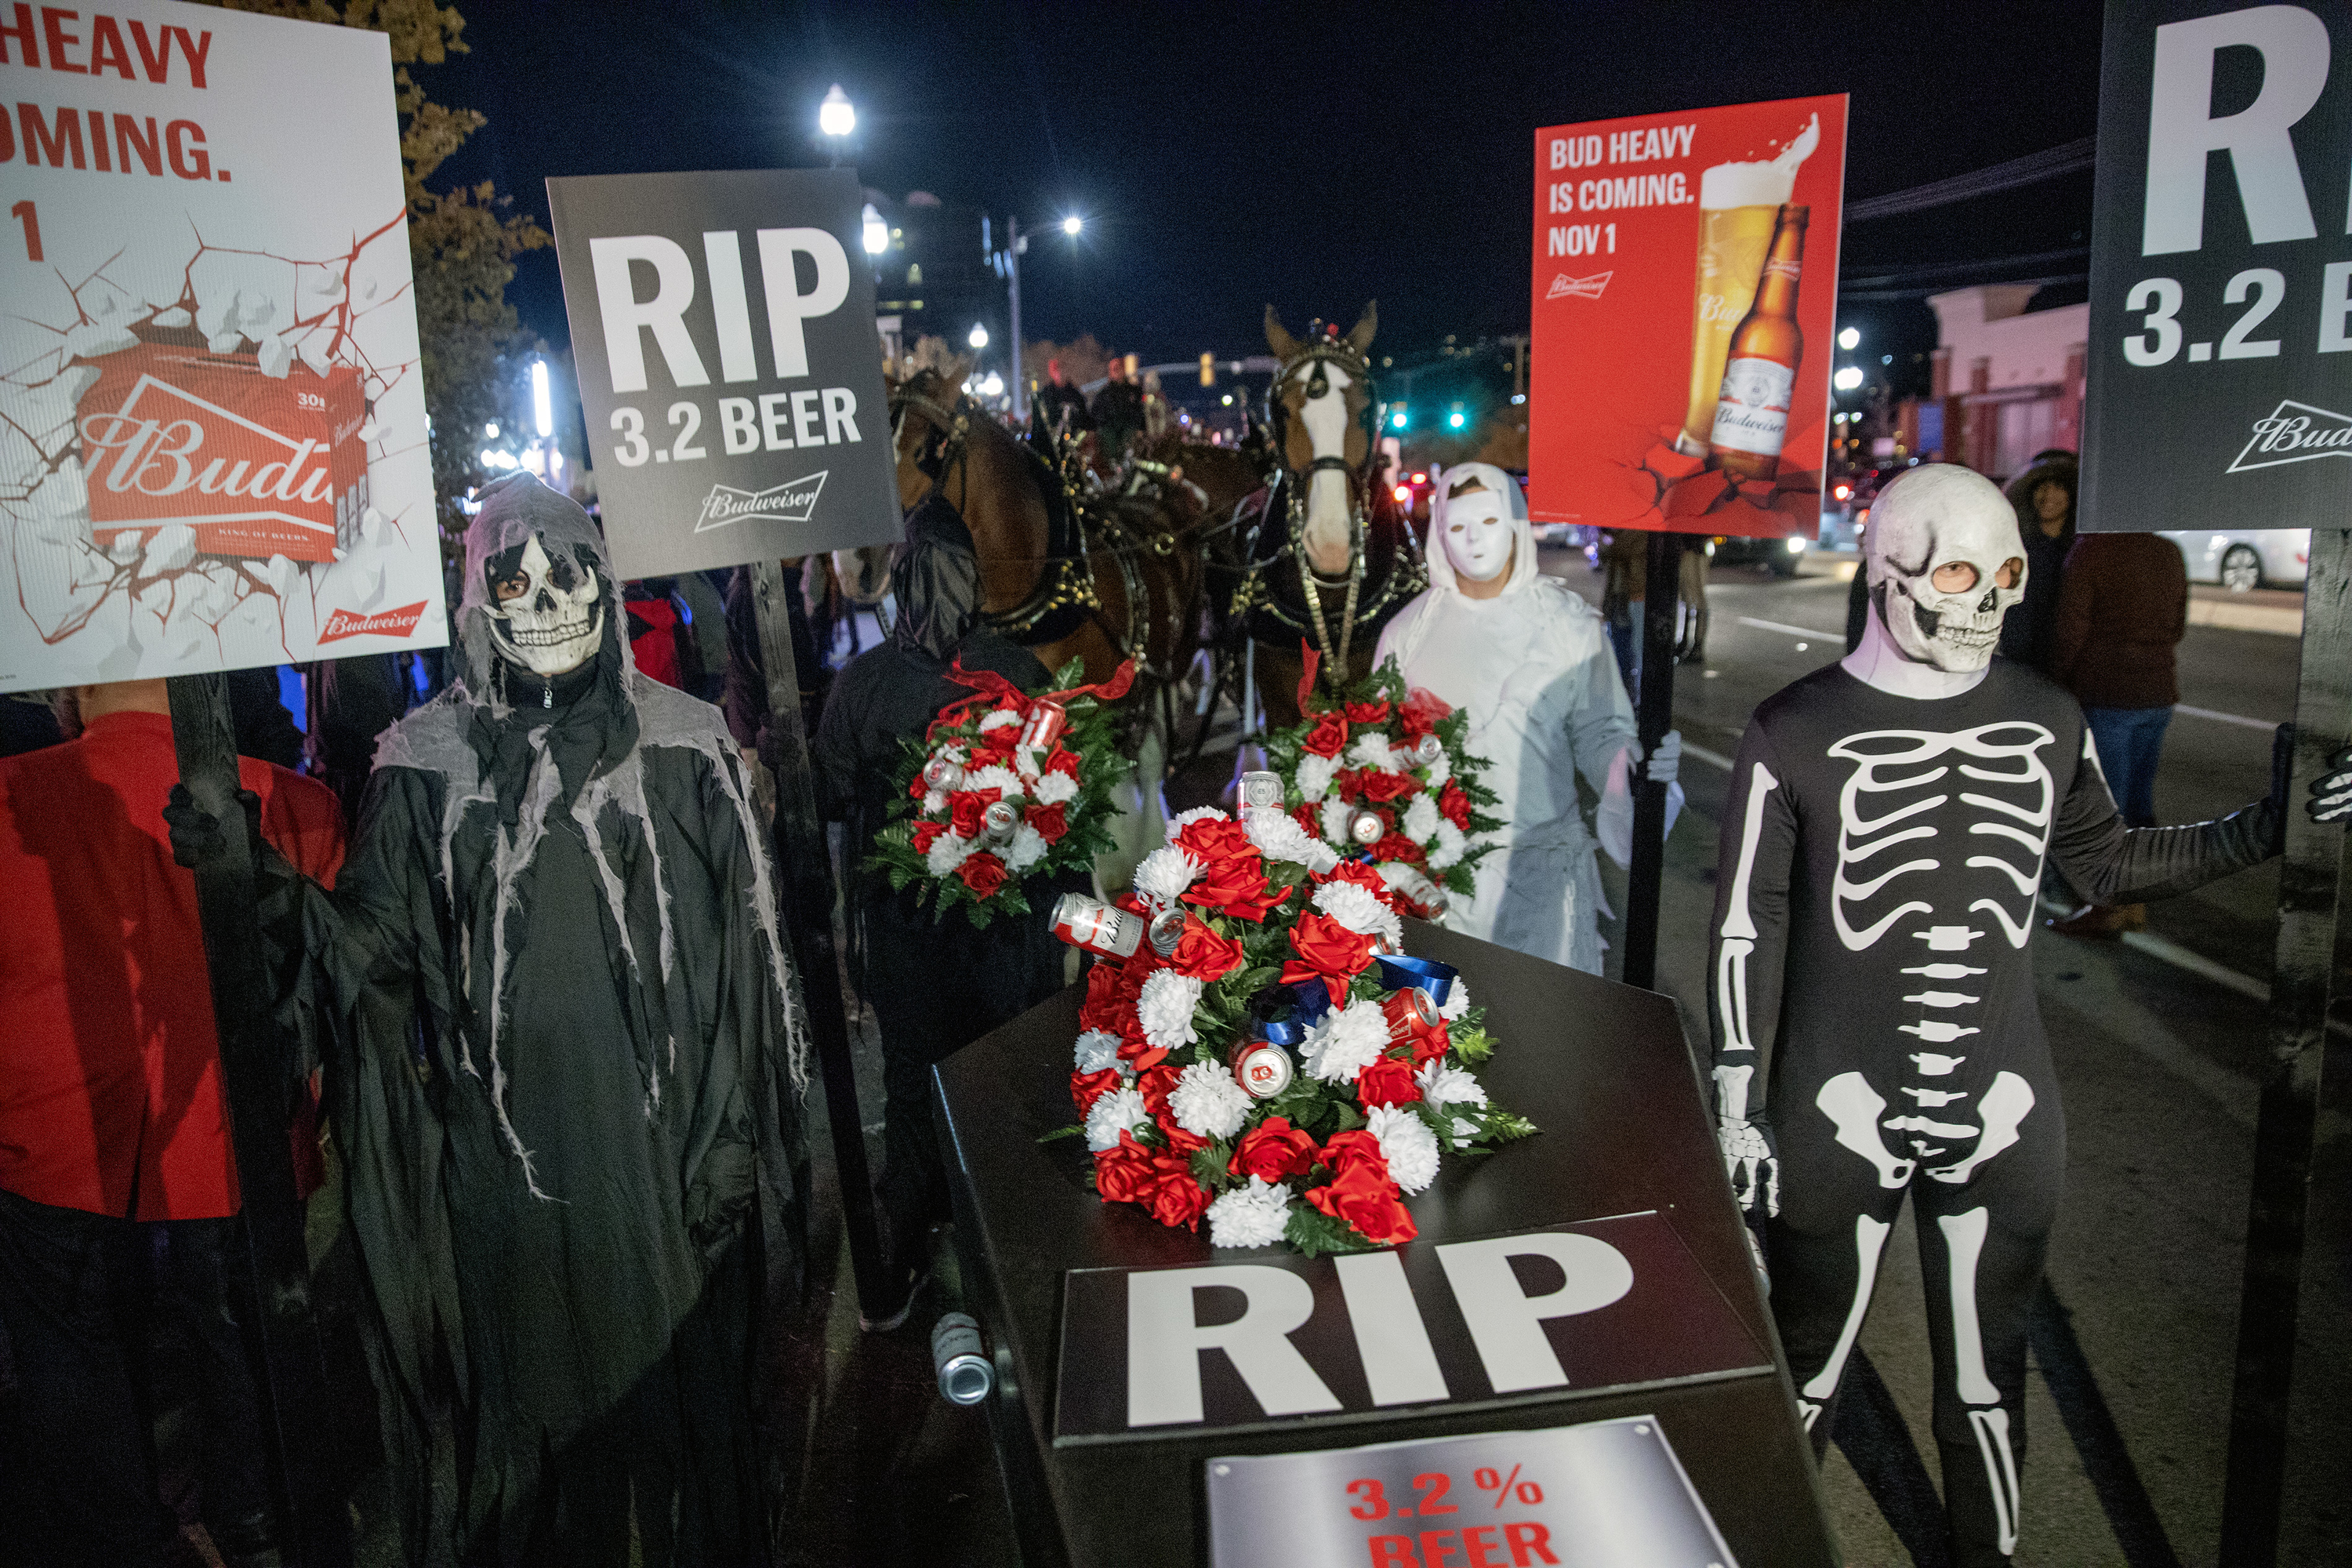 Budweiser holds 'funeral' to mark the death of Utah's '3.2 beer' law